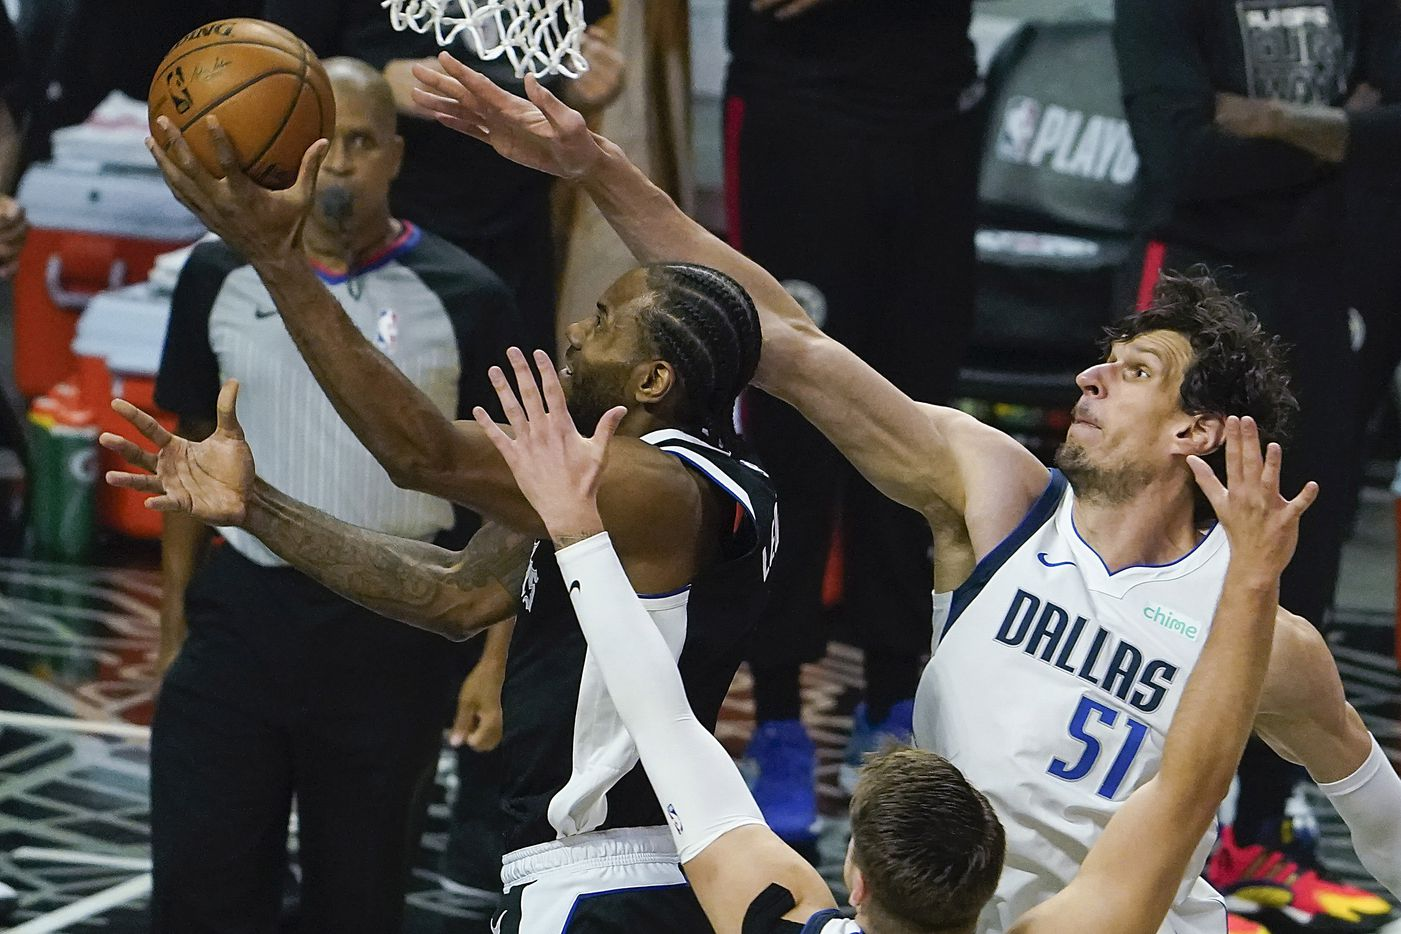 Dallas Mavericks center Boban Marjanovic (51) and guard Luka Doncic (77) defend a drive by LA Clippers forward Kawhi Leonard (2) during the first quarter an NBA playoff basketball game at the Staples Center on Wednesday, June 2, 2021, in Los Angeles.  (Smiley N. Pool/The Dallas Morning News)